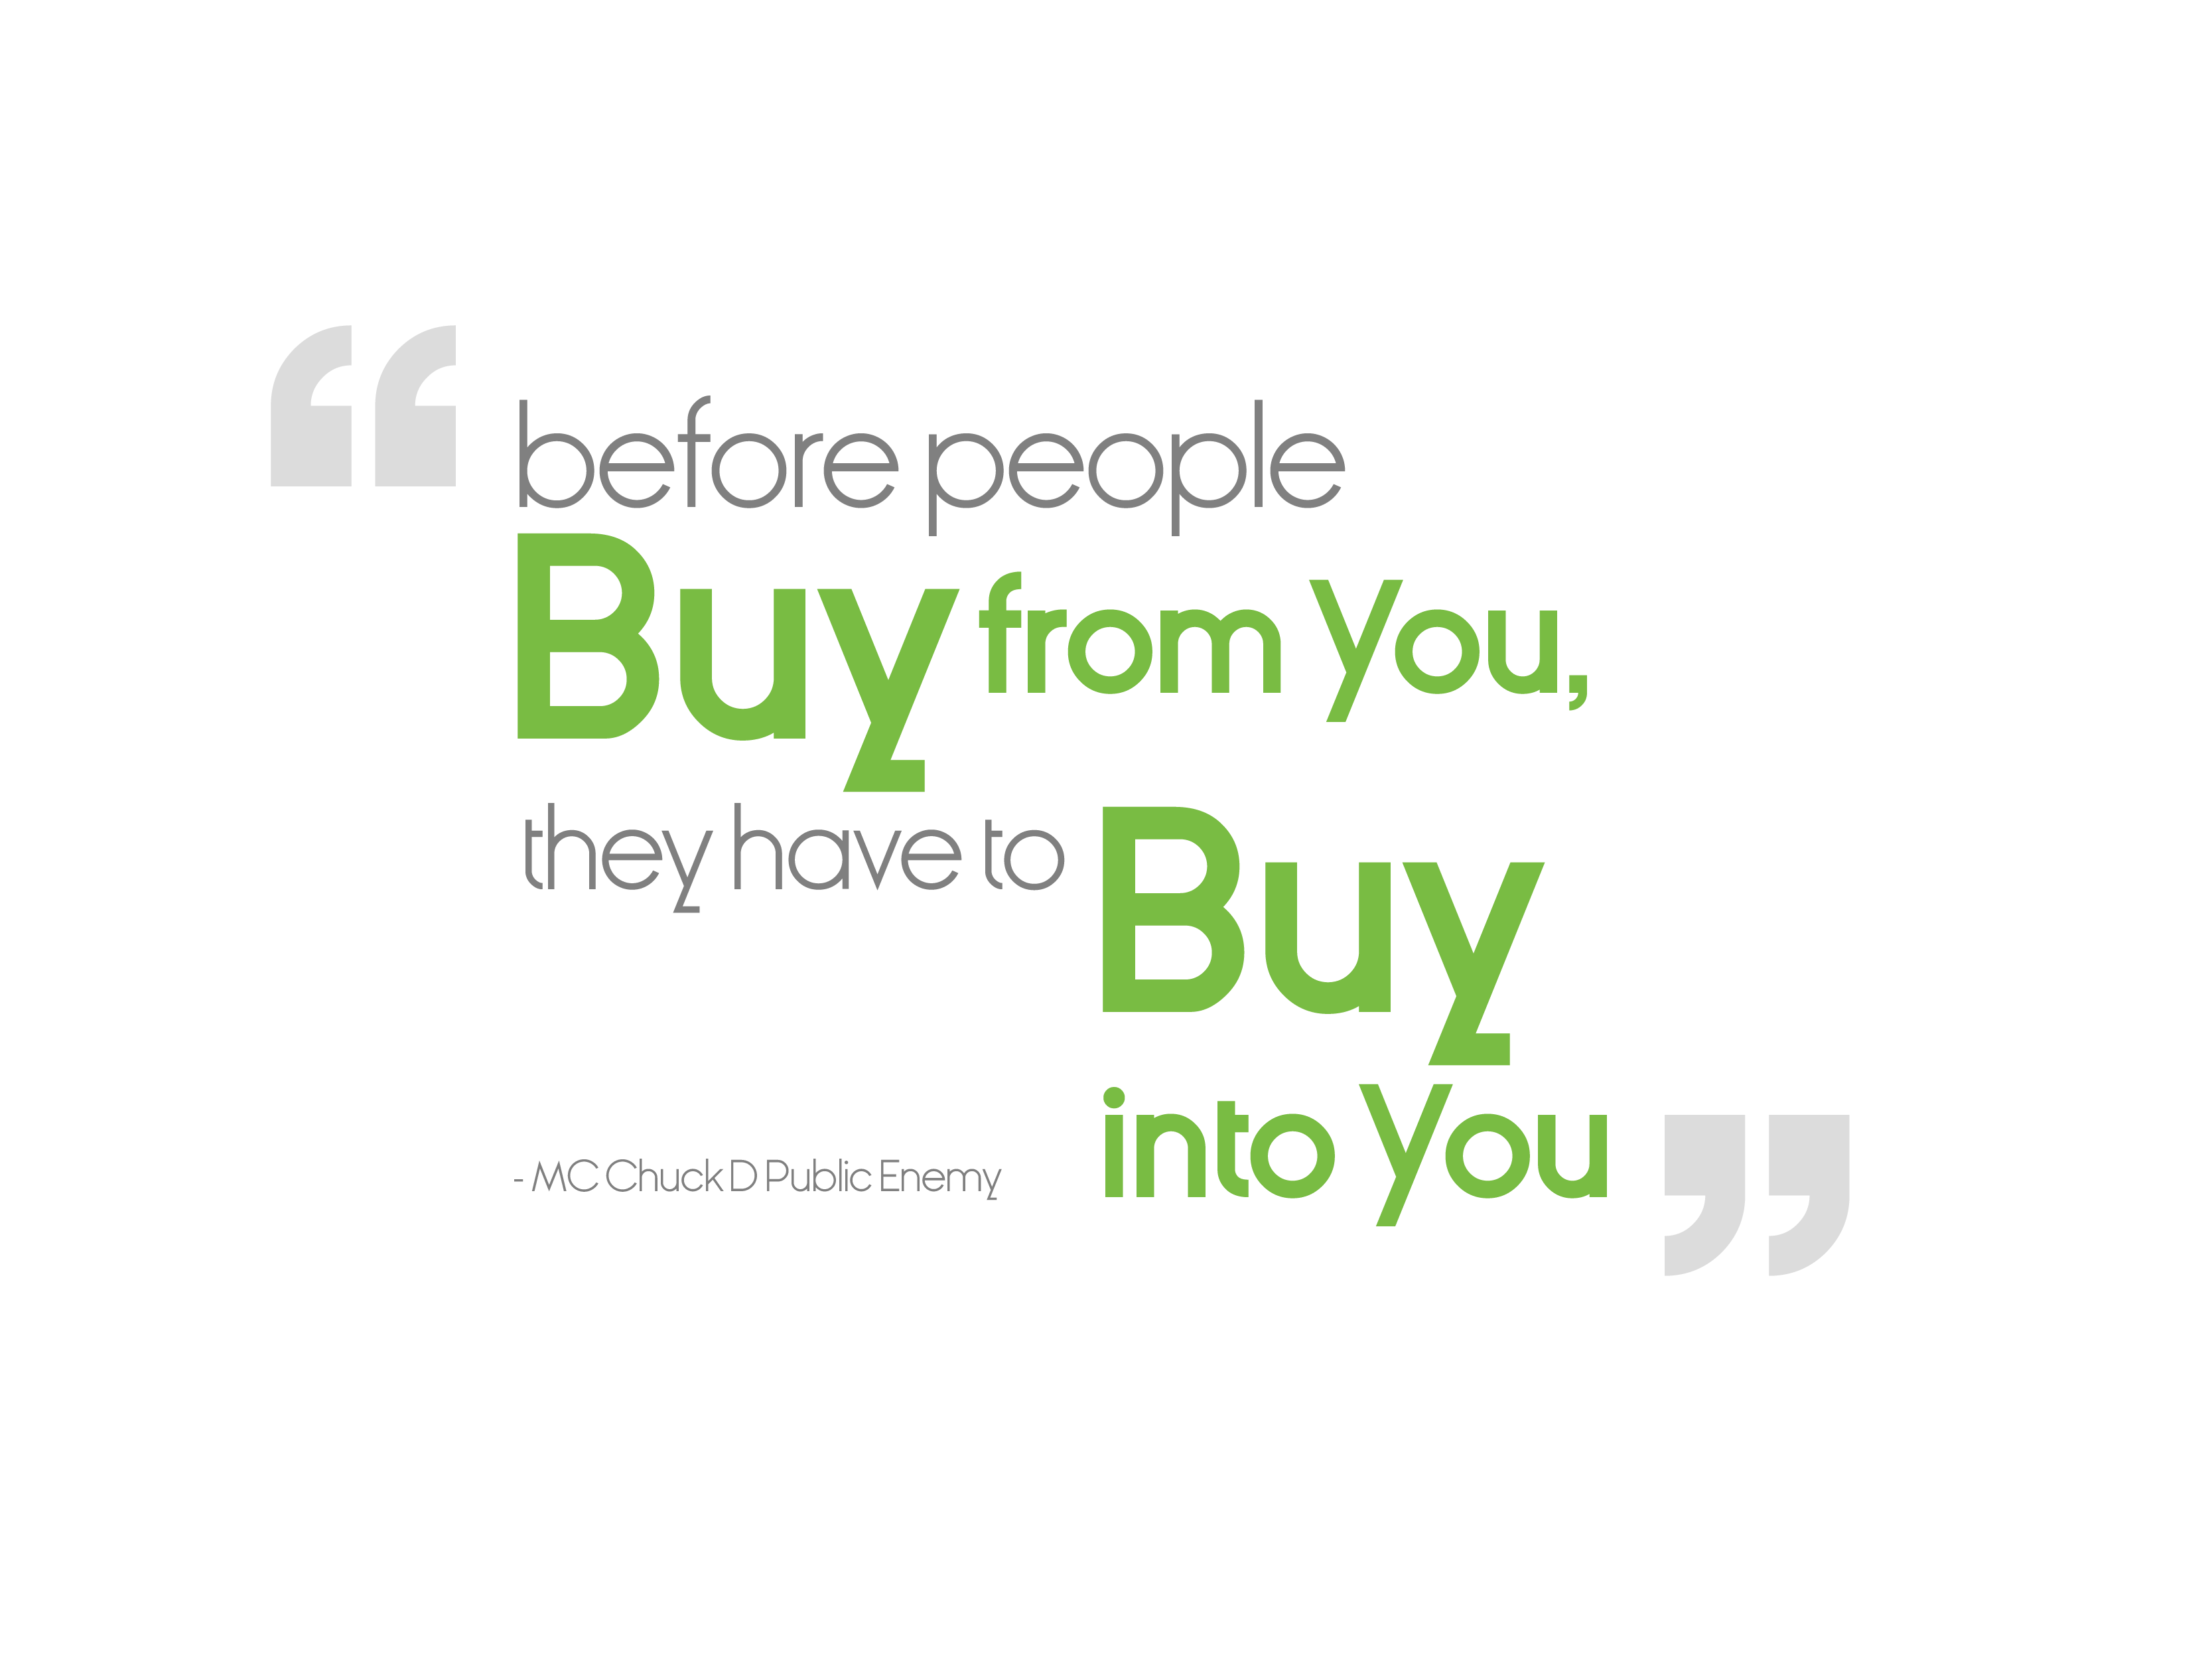 Before people buy from you, they have to buy into you